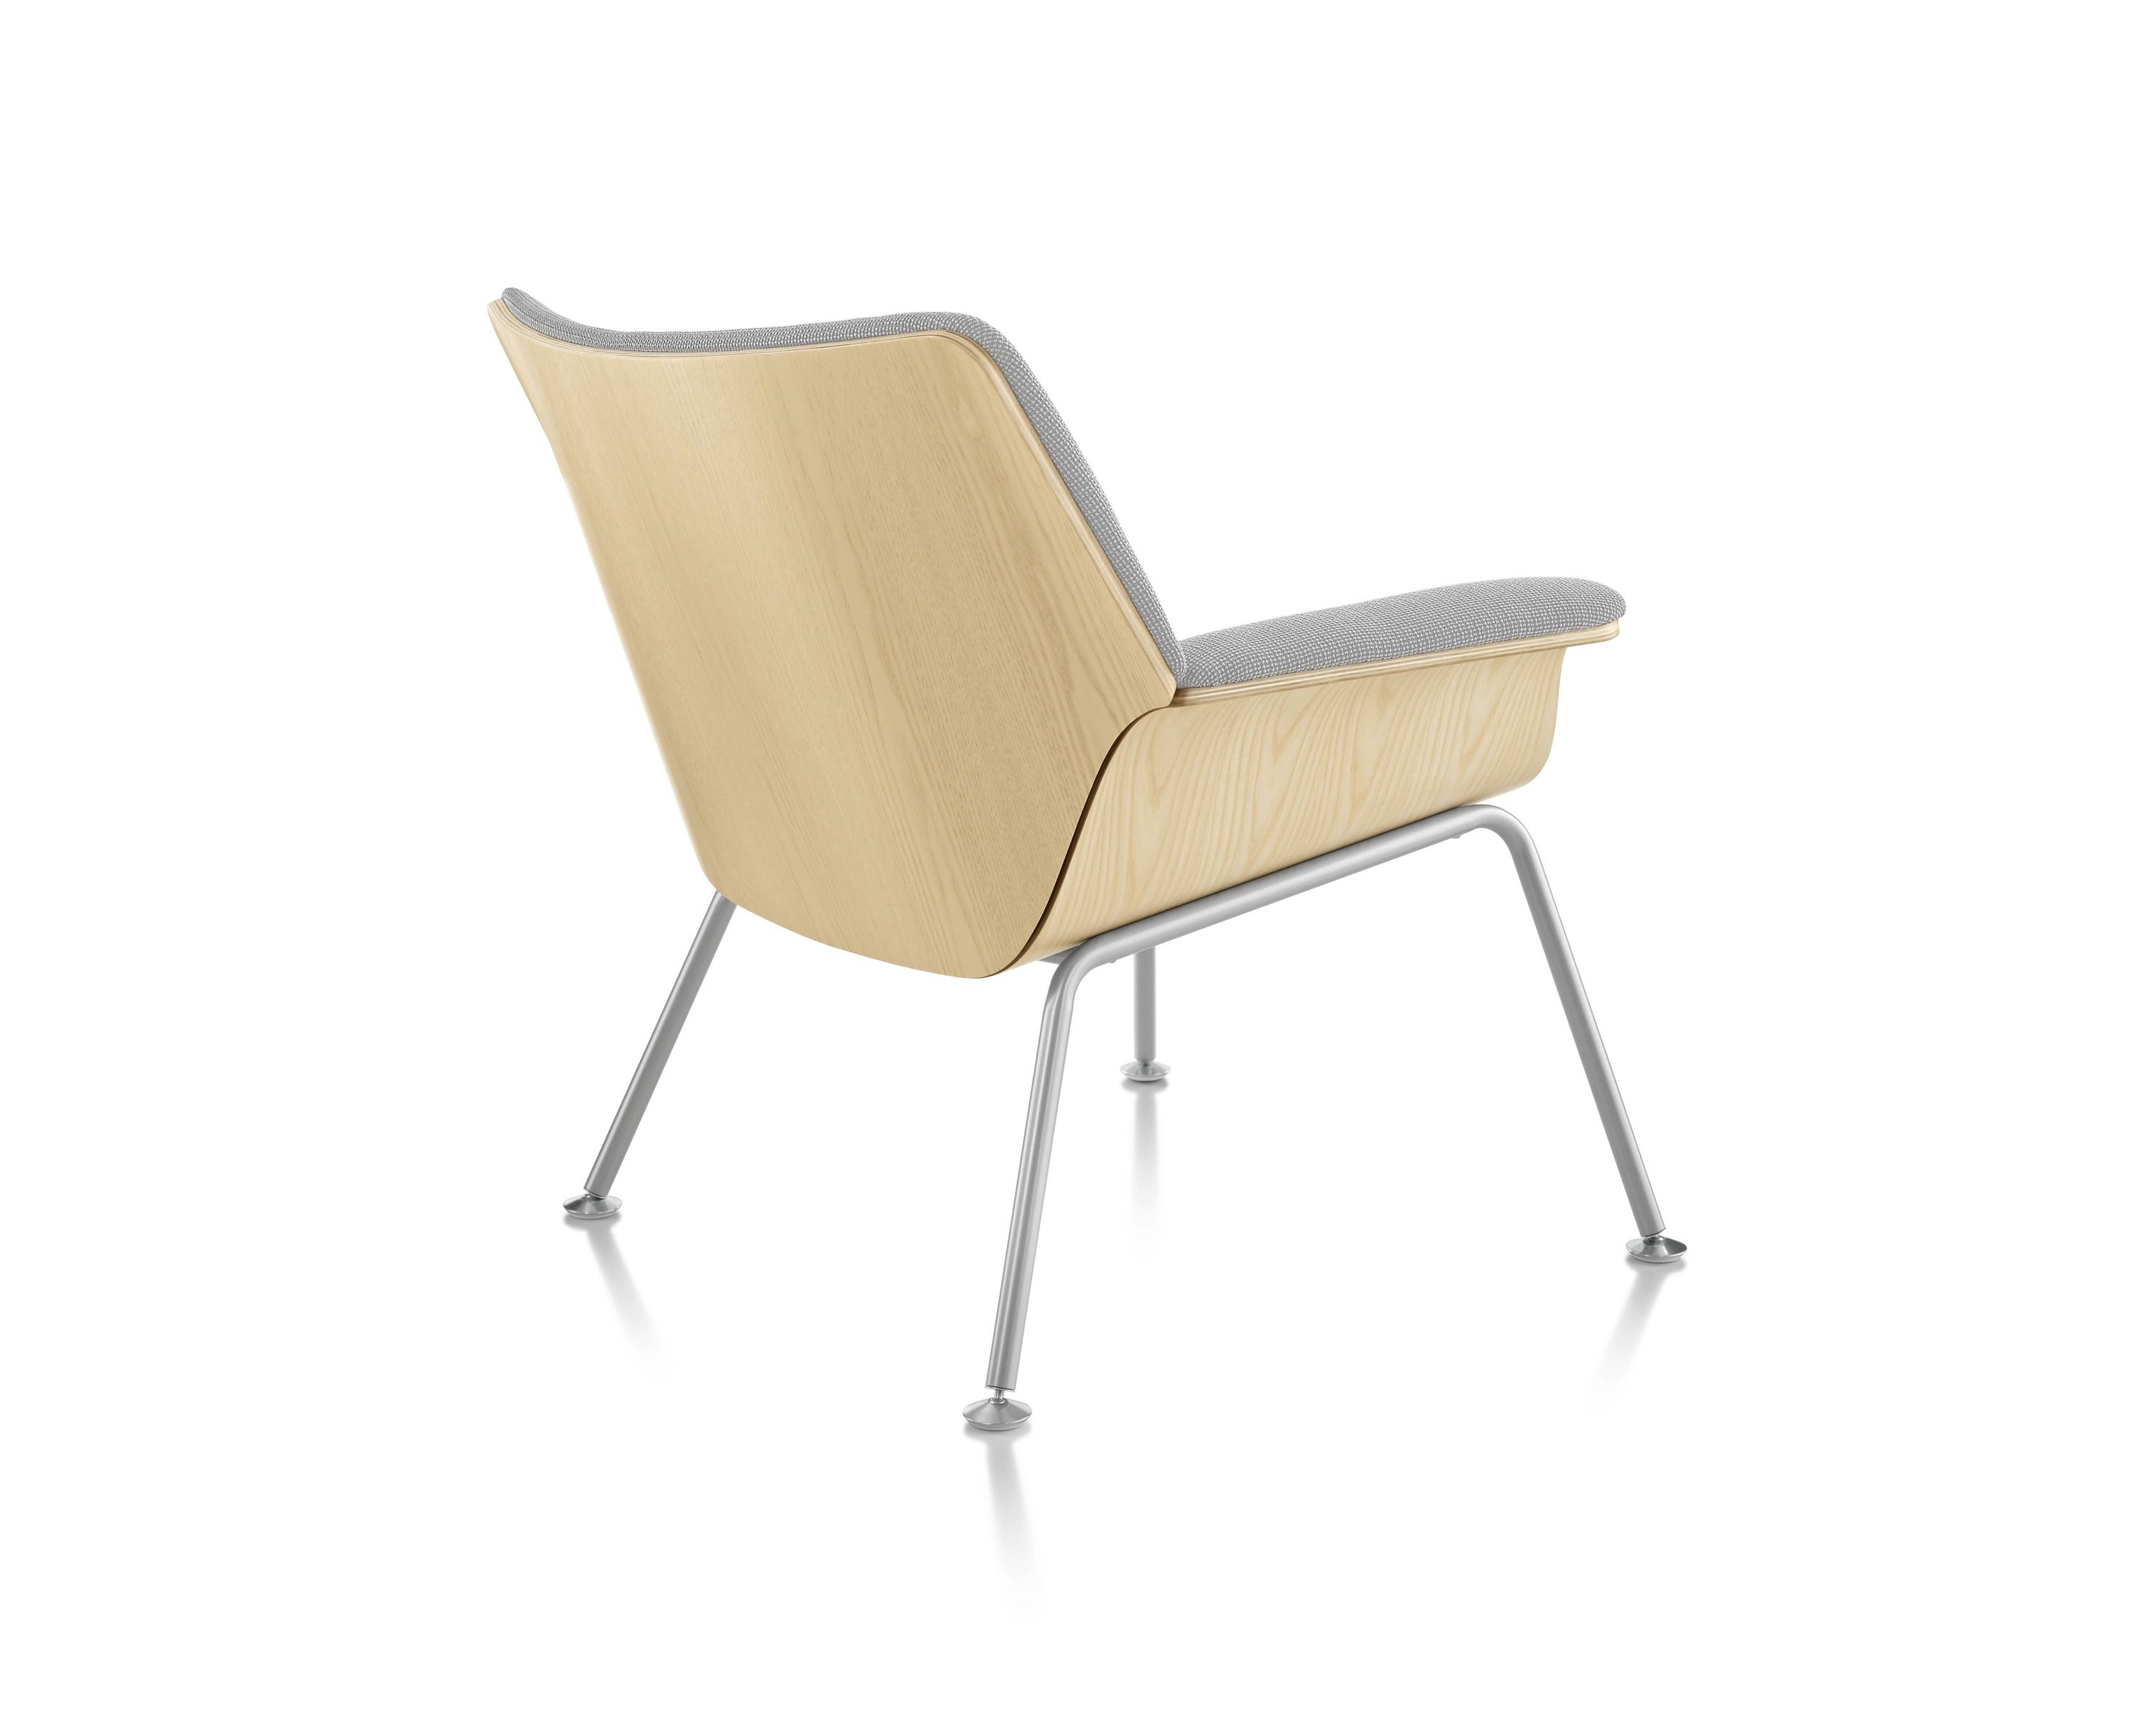 The Herman Miller Work Free Swoop Armchair